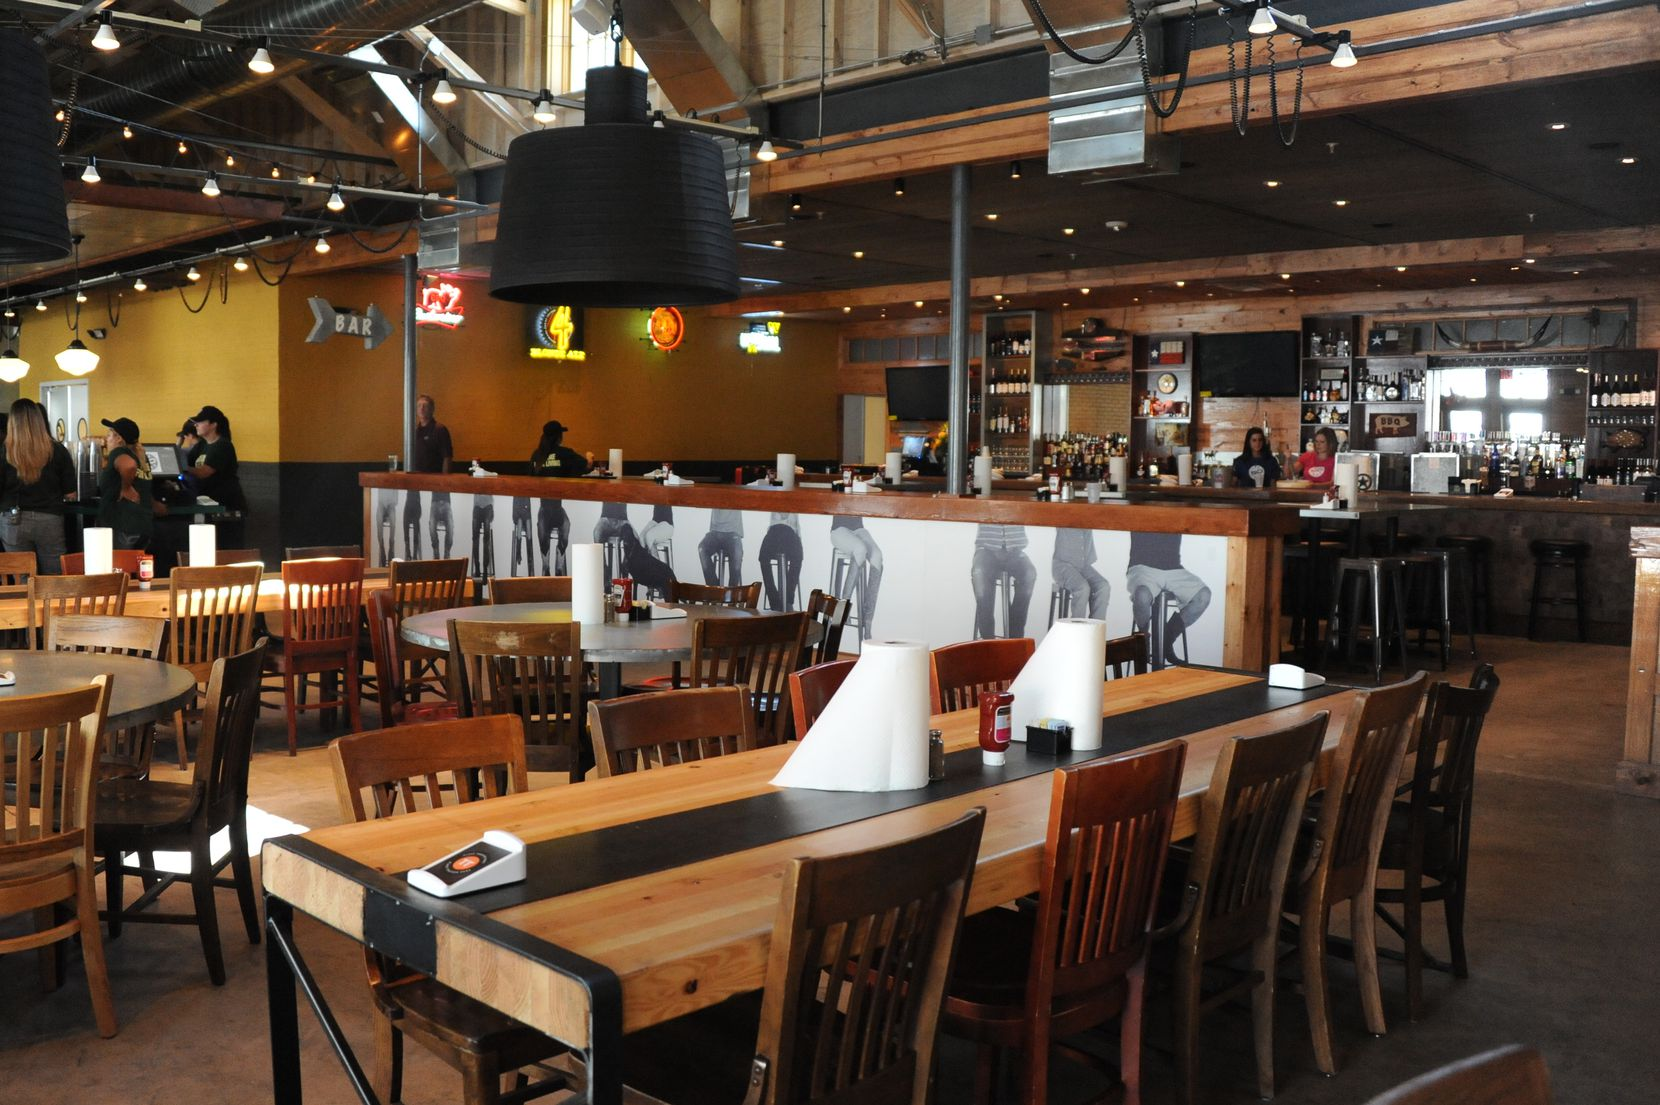 The cavernous barbecue joint has four seating areas -- a bar, two dining areas and a back room that can be reserved for parties.